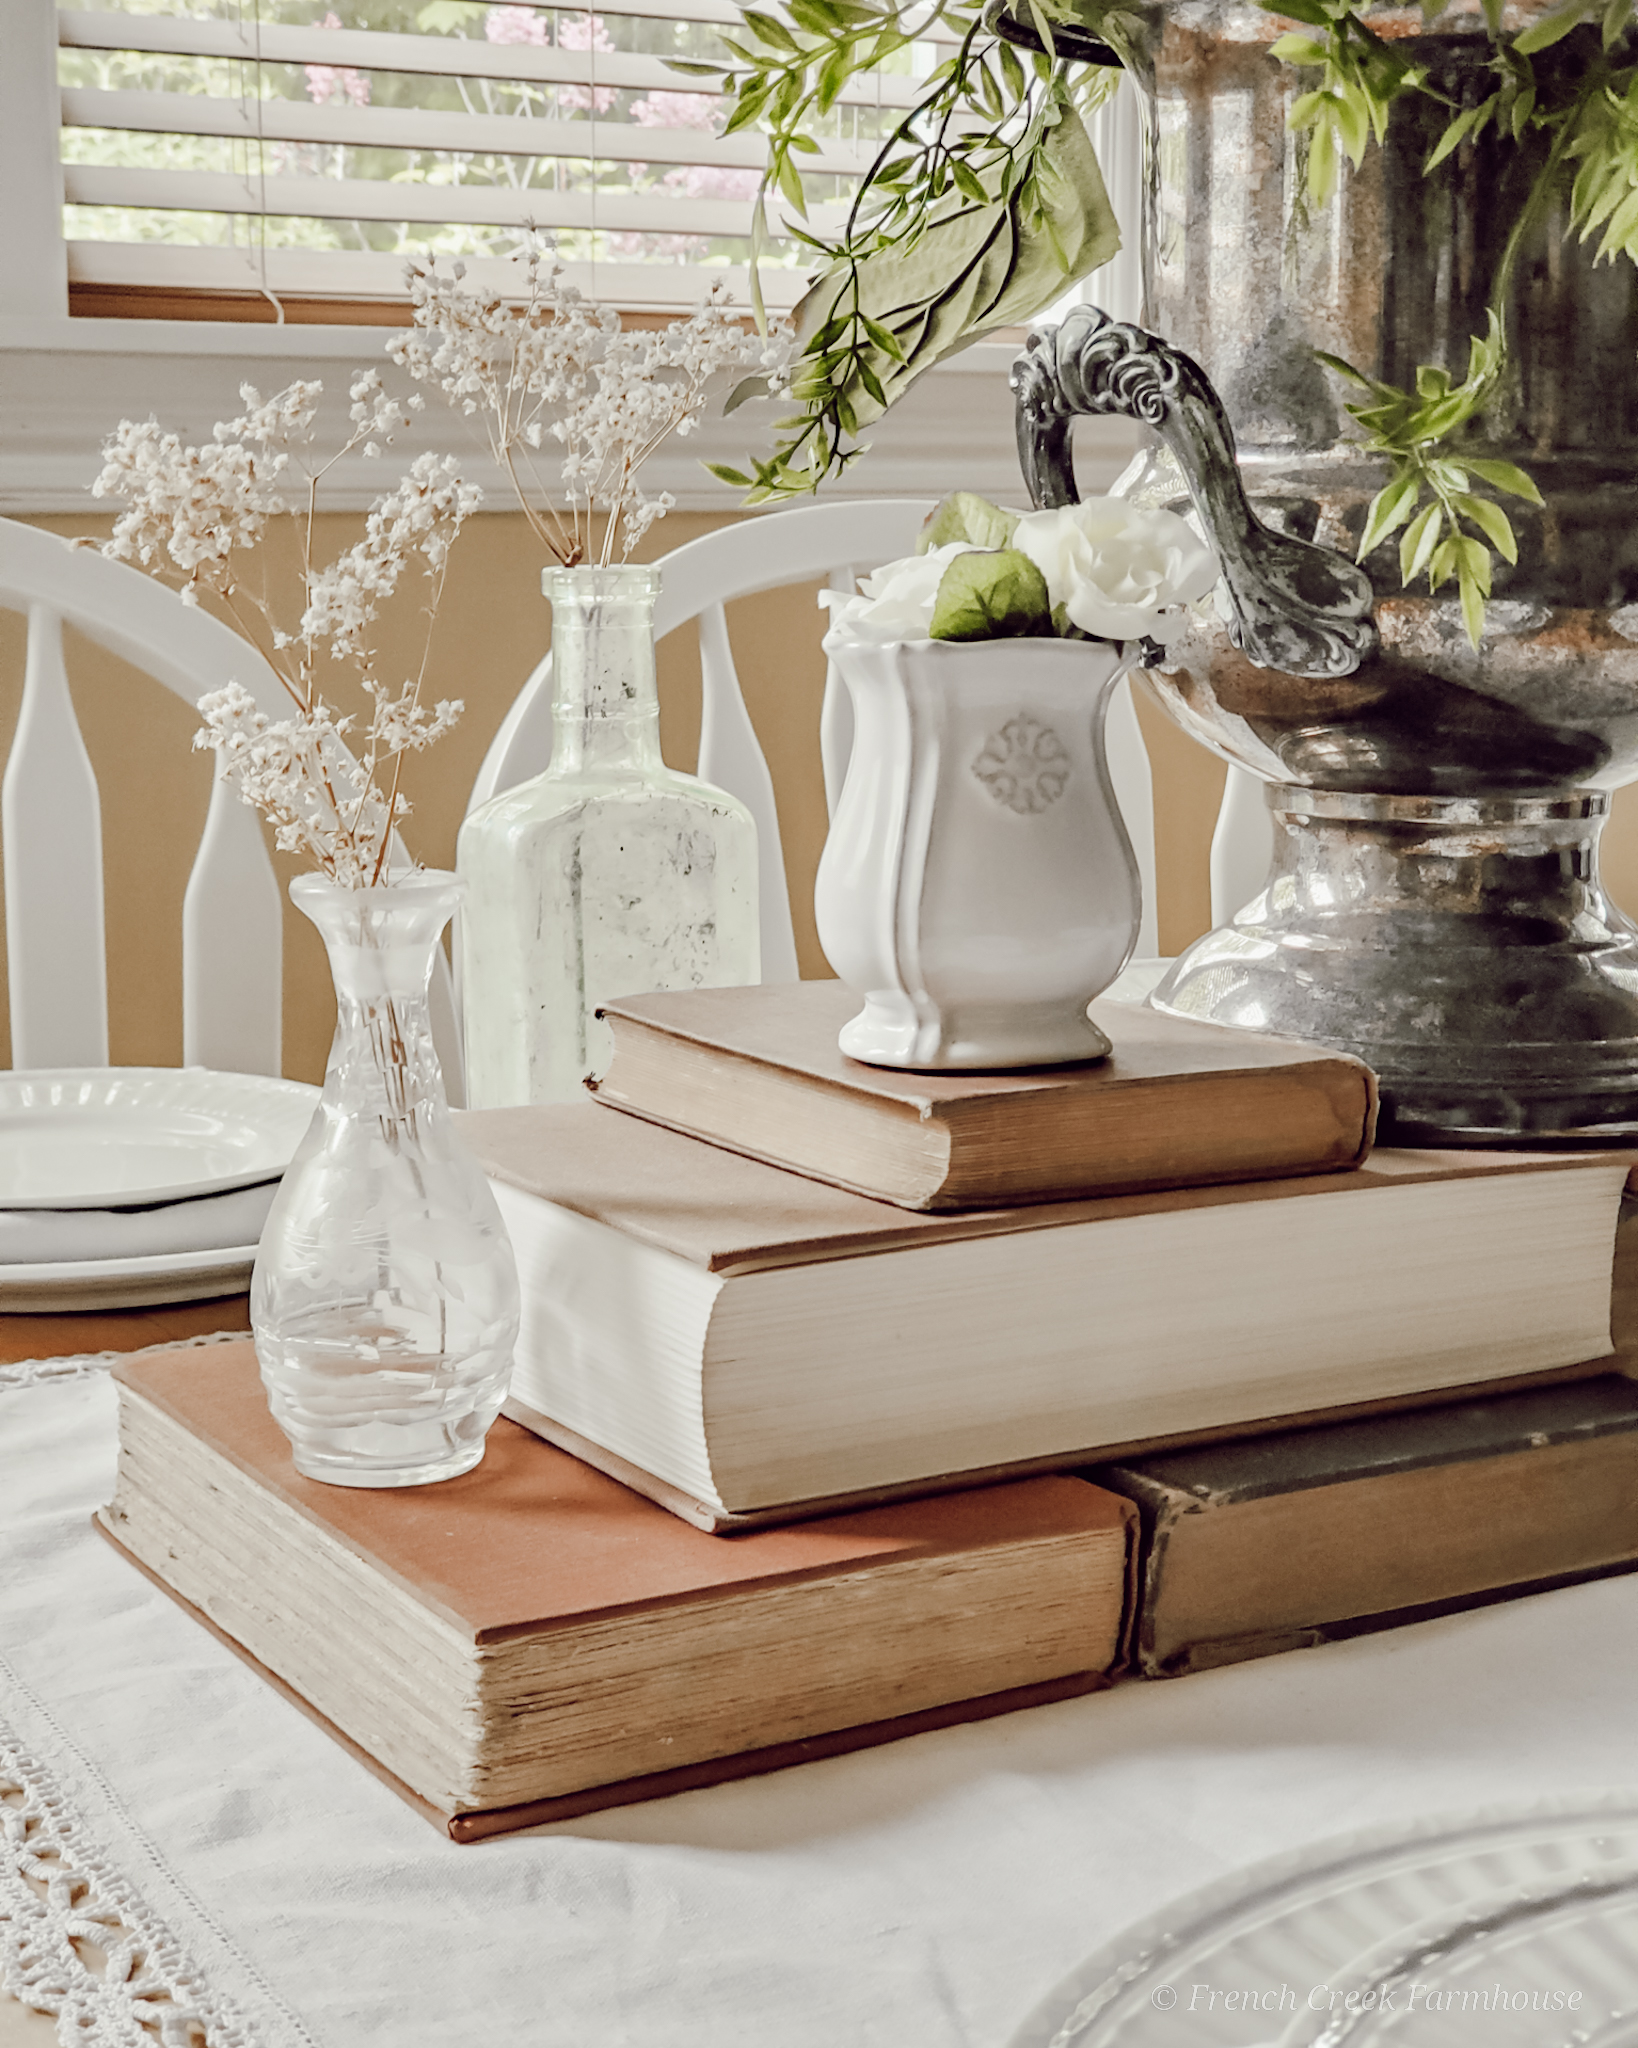 Old books used in a table centerpiece with vintage vases